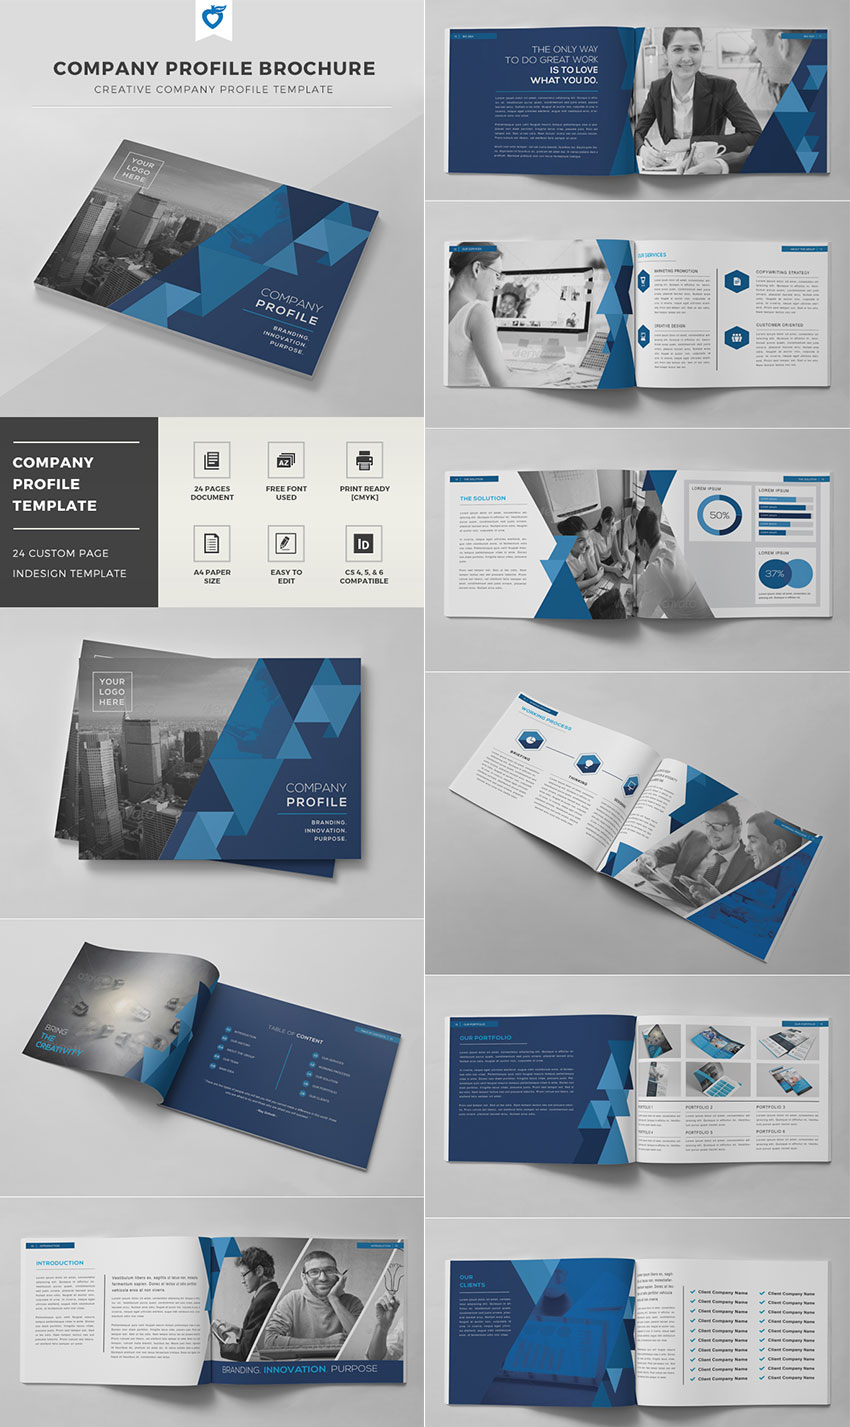 20 best indesign brochure templates for creative business marketing company profile brochure indd template flashek